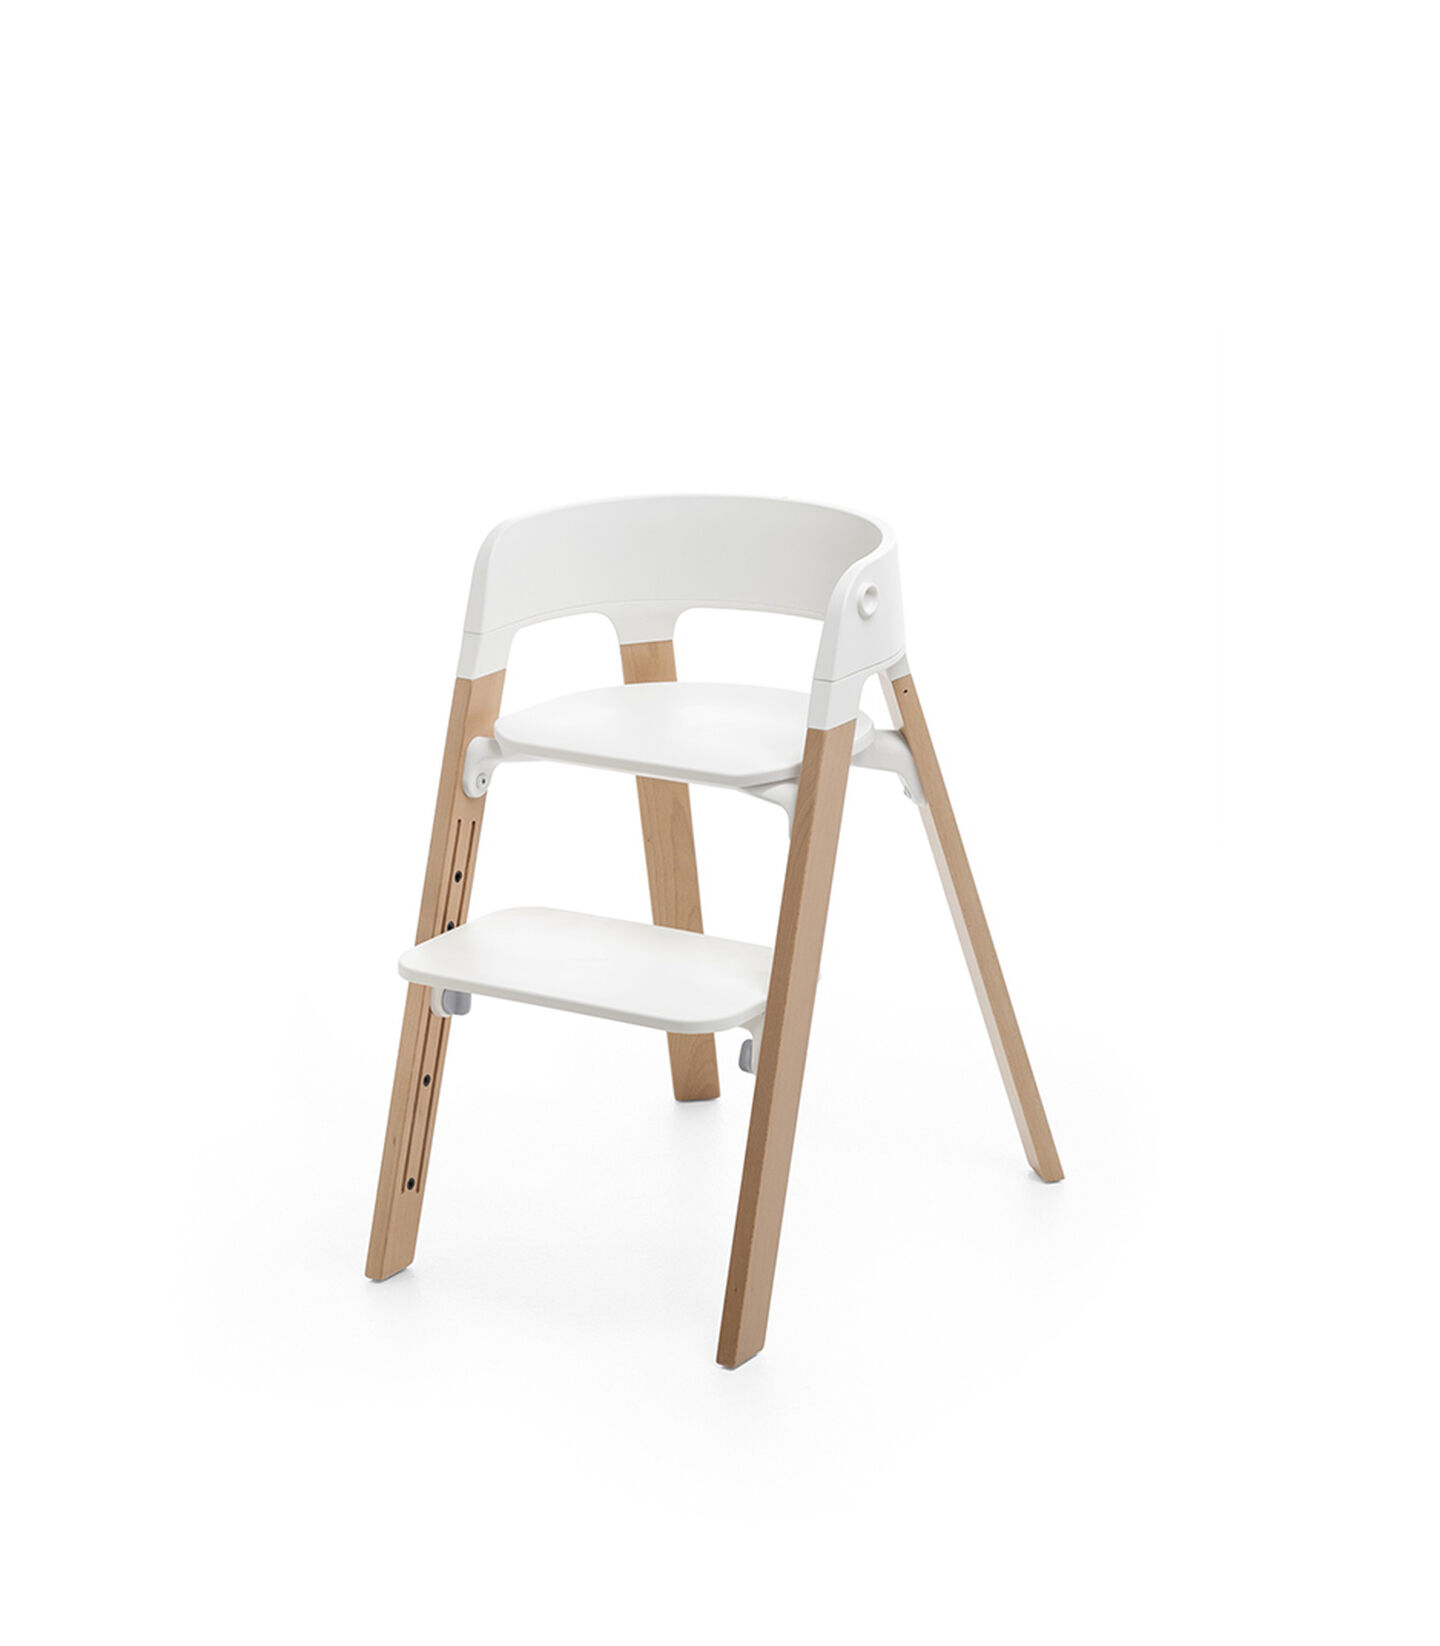 Stokke® Steps™ Chair White Seat Natural Legs, Natural, mainview view 1